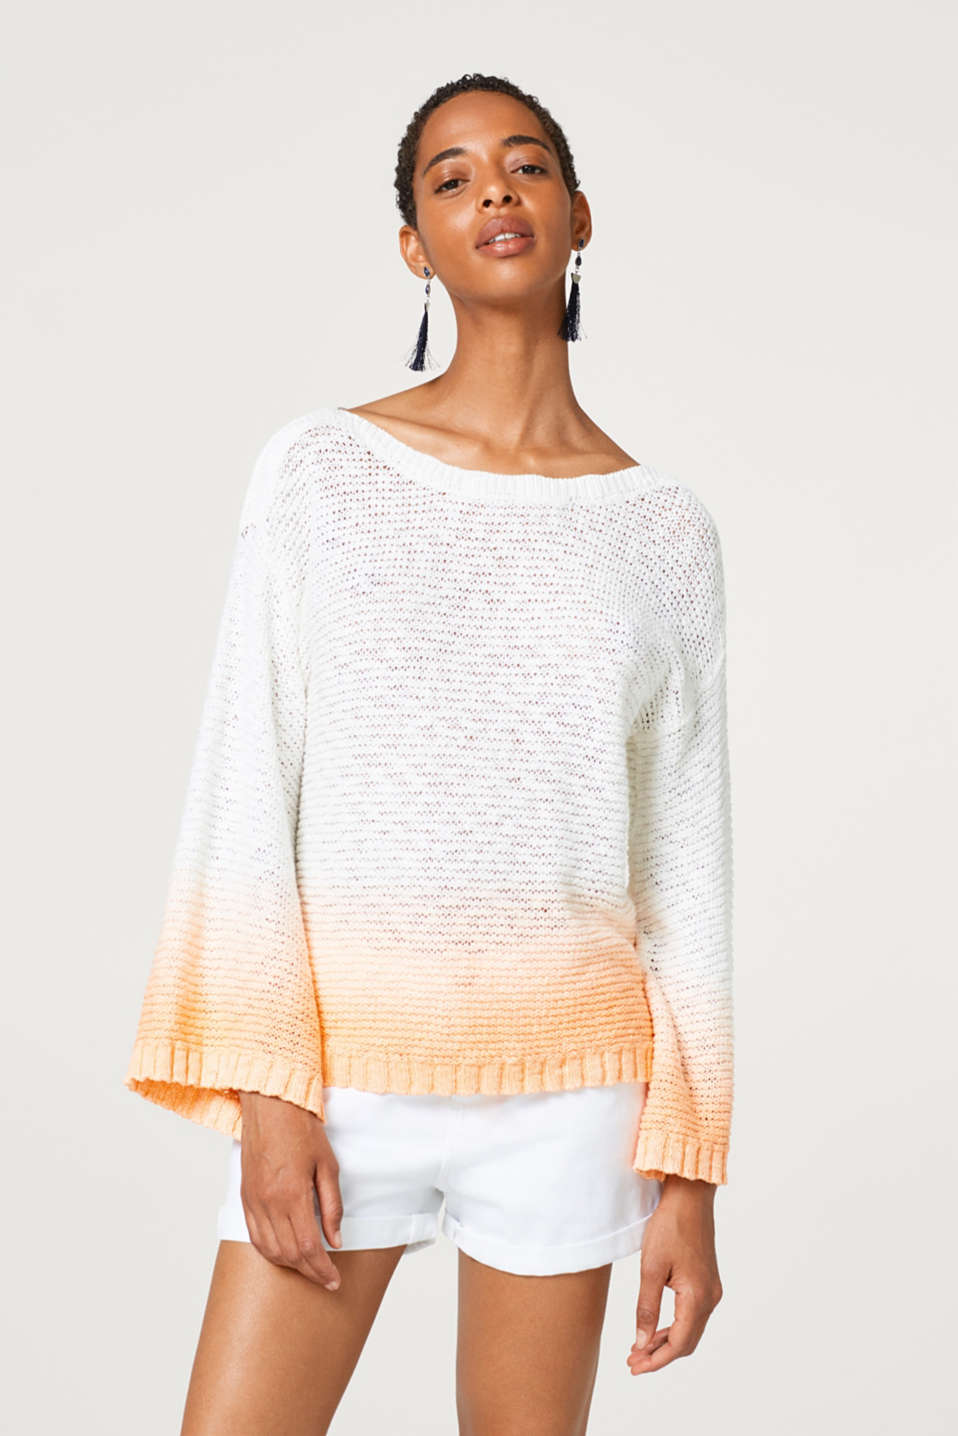 edc - Textured jumper with colour gradation, made of 100% cotton